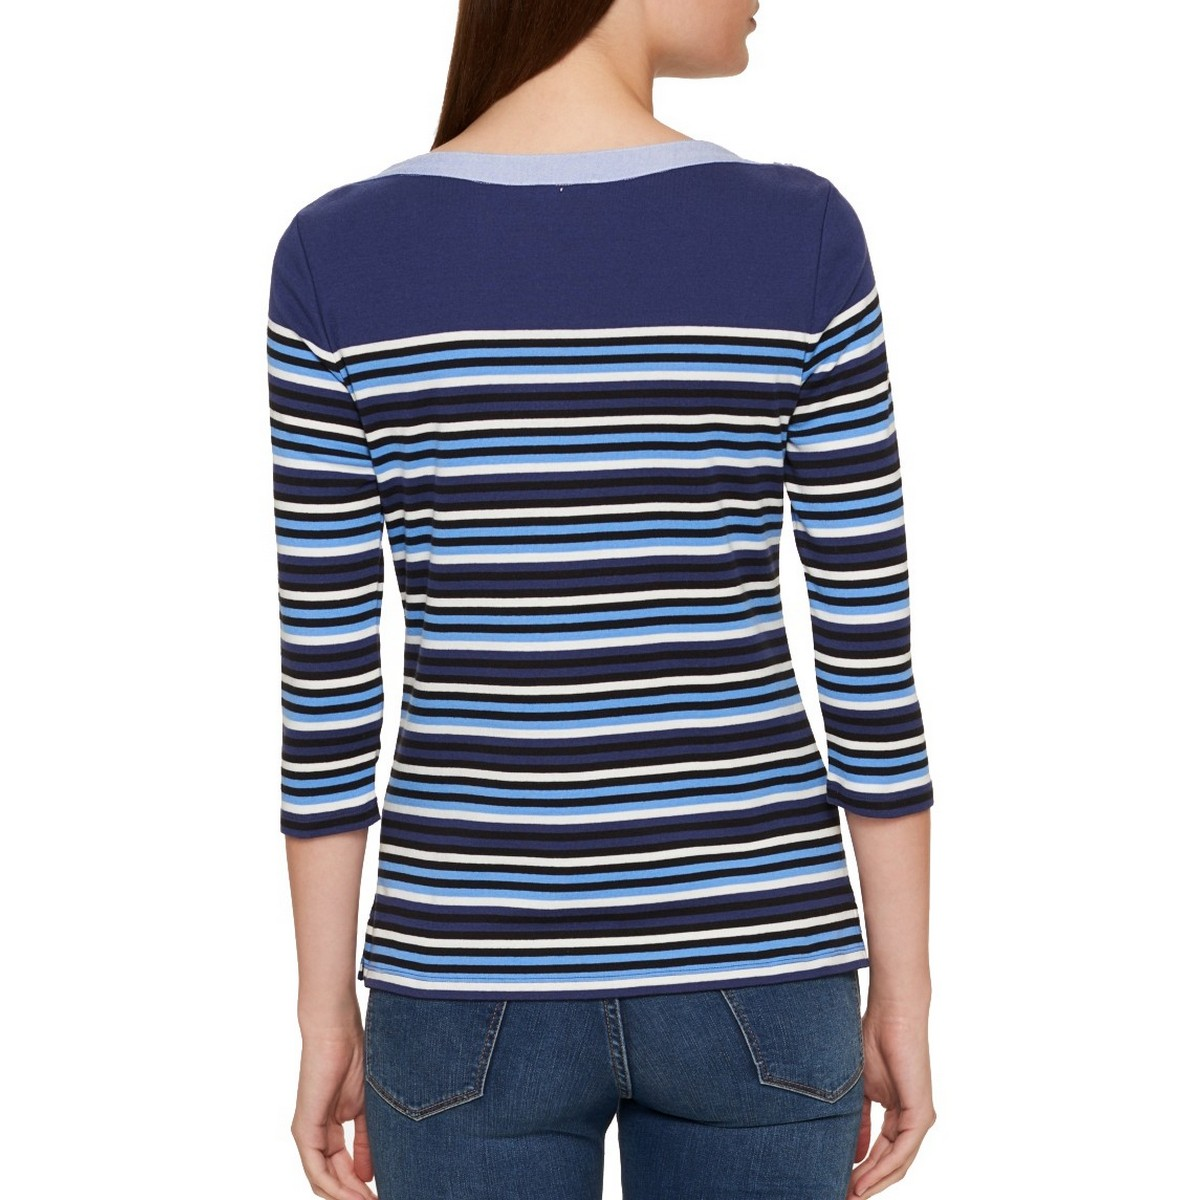 TOMMY-HILFIGER-NEW-Women-039-s-Cotton-Striped-Boat-Neck-Casual-Shirt-Top-TEDO thumbnail 4